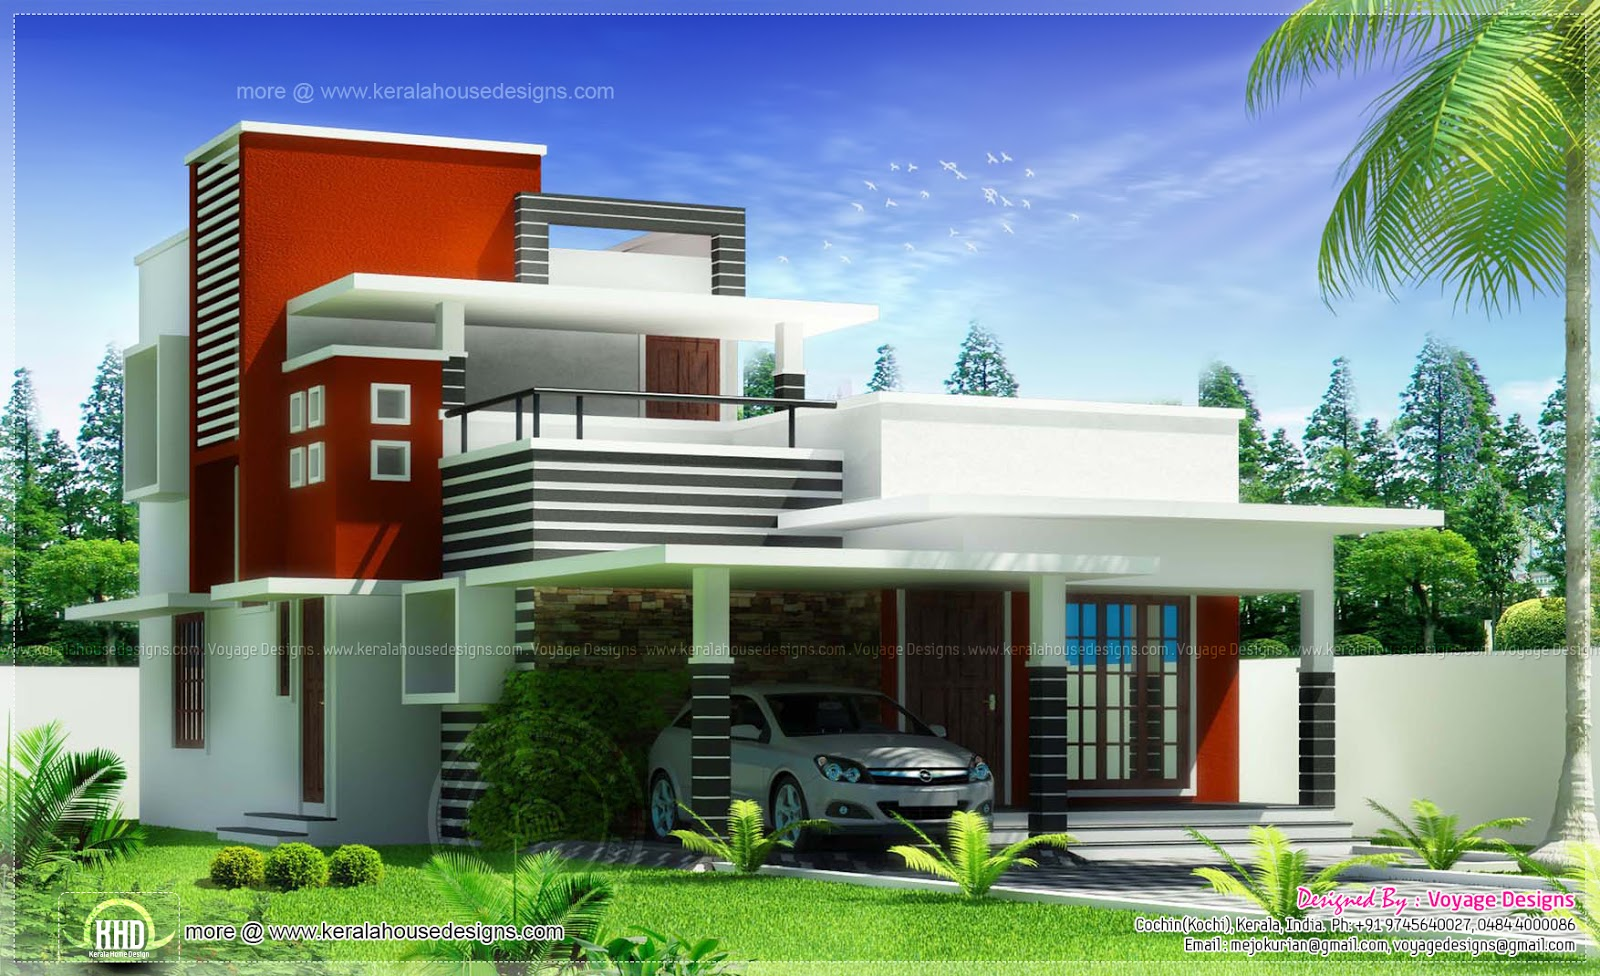 3 bed room contemporary style house home kerala plans - Modern house designs ...